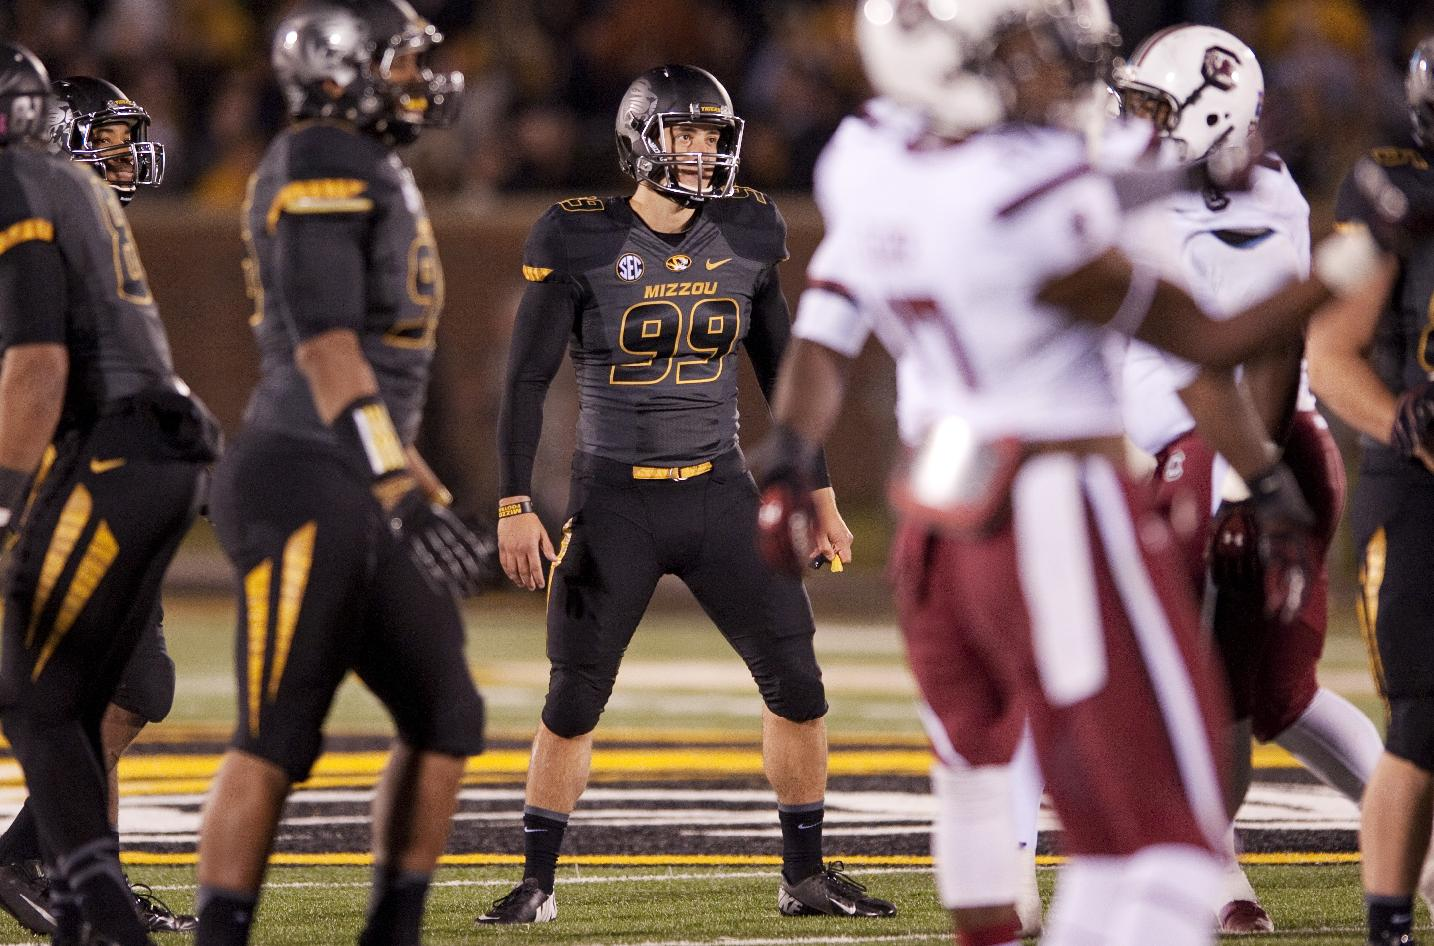 In this Oct. 26, 2013 photo, Missouri kicker Andrew Baggett (99), watches his extra point kick he made in the first overtime of Missouri's 27-24 loss to South Carolina an NCAA college football game in Columbia, Mo. College coaches and administrators concerned about tweets their athletes might send also should be wary of the ones their athletes receive. Social media experts point to vitriolic messages directed at football players Andrew Baggett of Missouri and Kenny Bell of Nebraska as examples of why schools should counsel athletes on how to cope with criticism crossing the line from heckling to hate